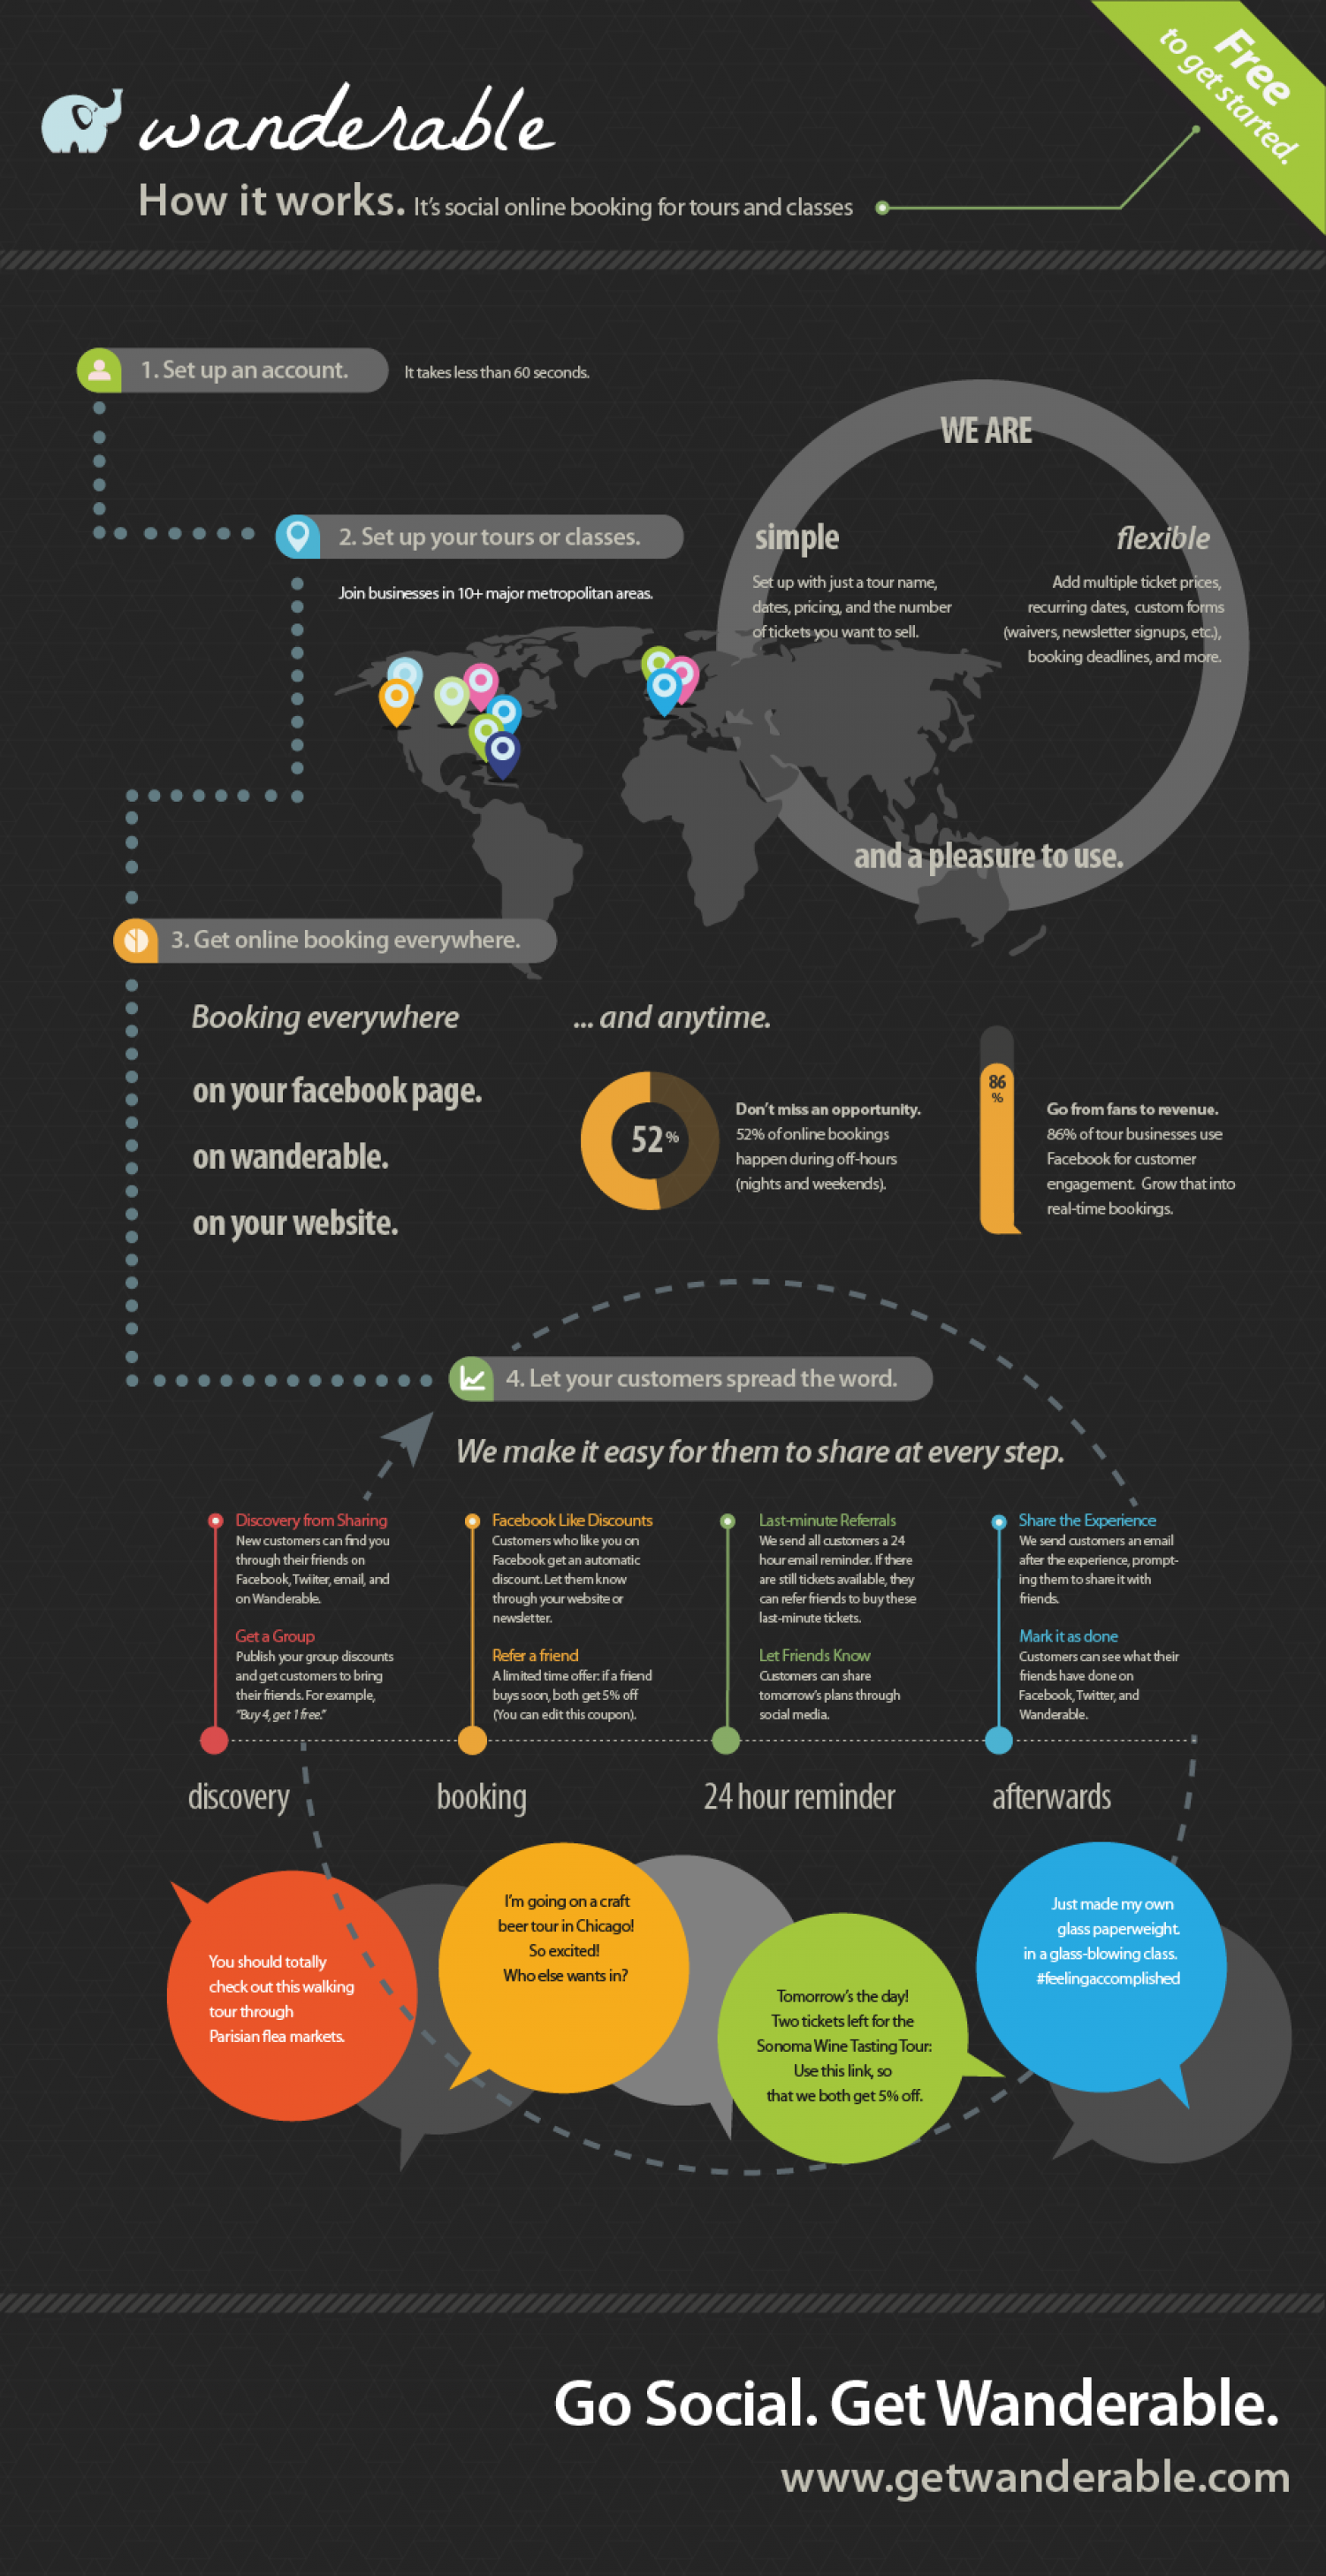 Wanderable - Social Online Booking for Tours and Classes Infographic